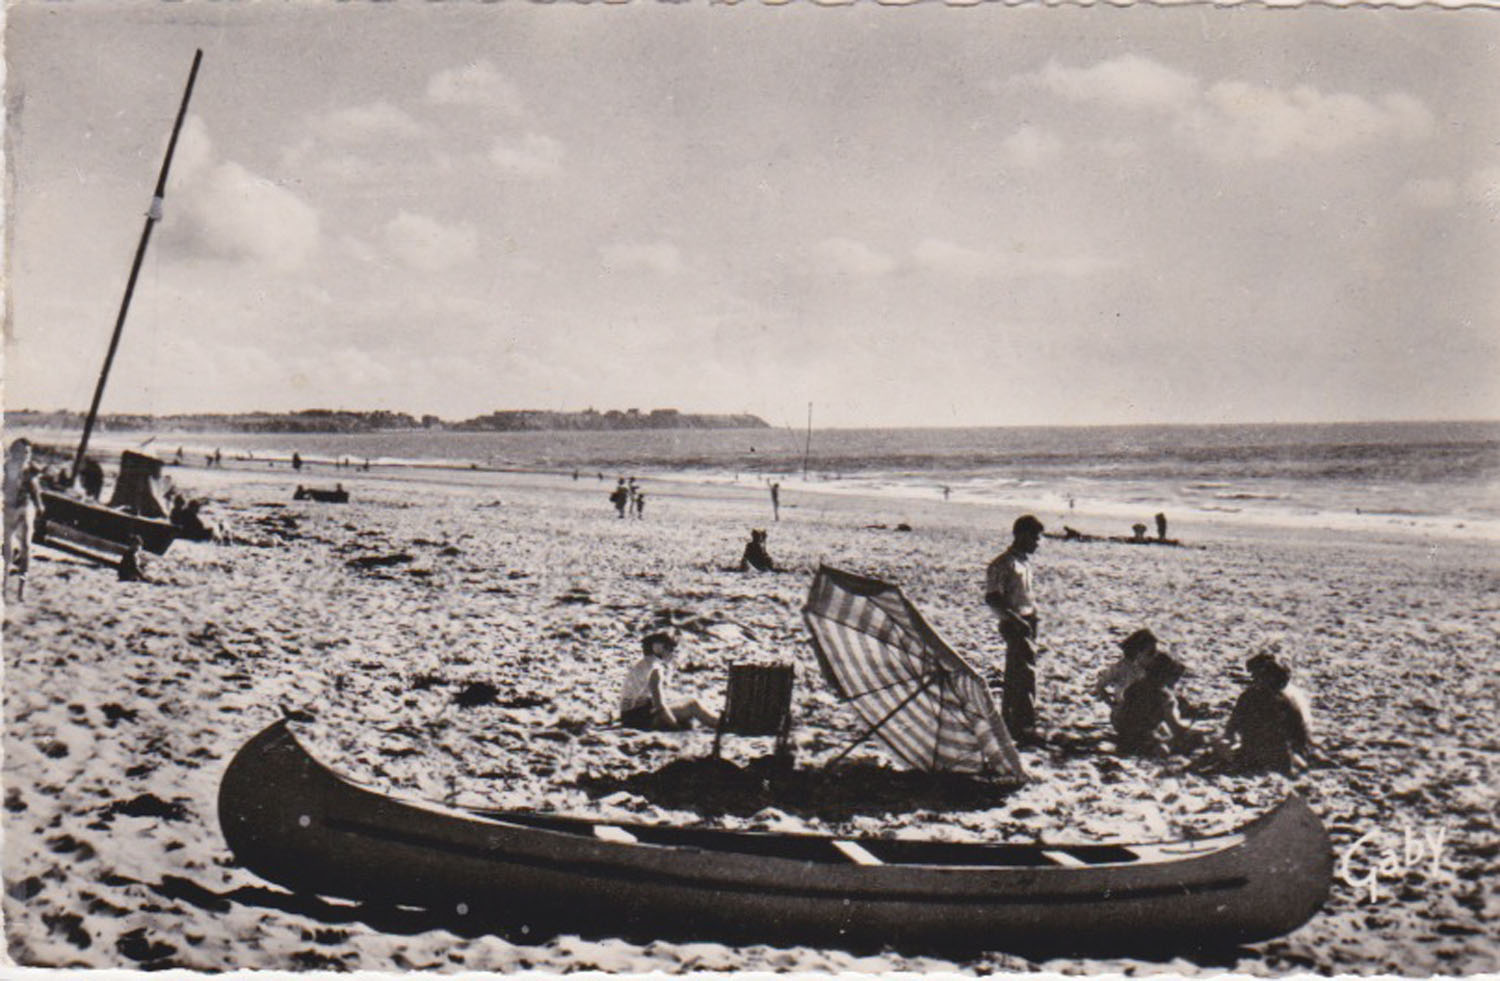 1957 St Martin Plage © collection Jean Claude Ferret